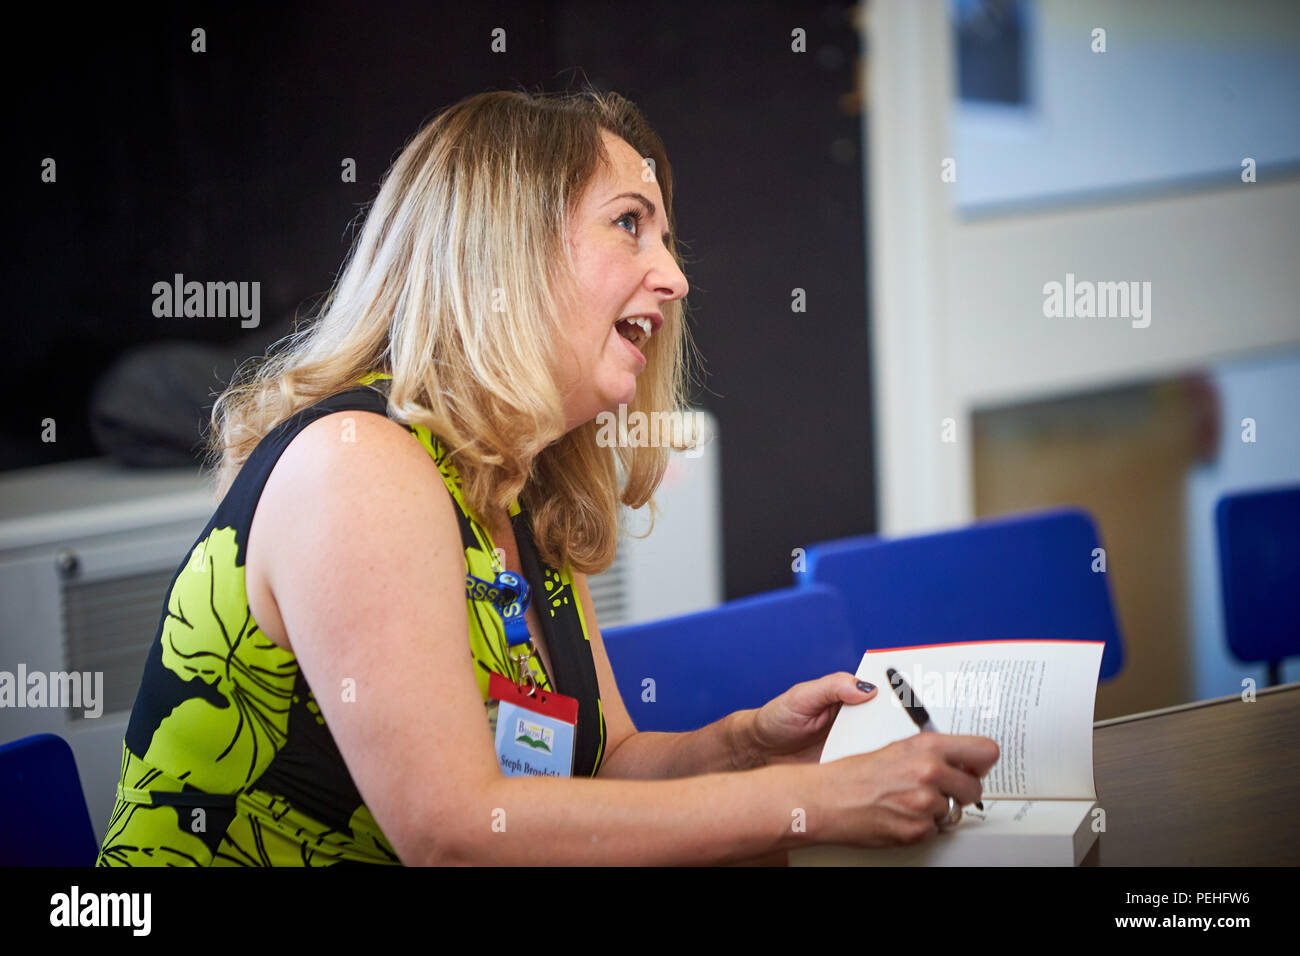 Stephanie Marland (L) writing as Steph Broadribb, signs books for fans at BeaconLit book festival in Ivinghoe - Stock Image